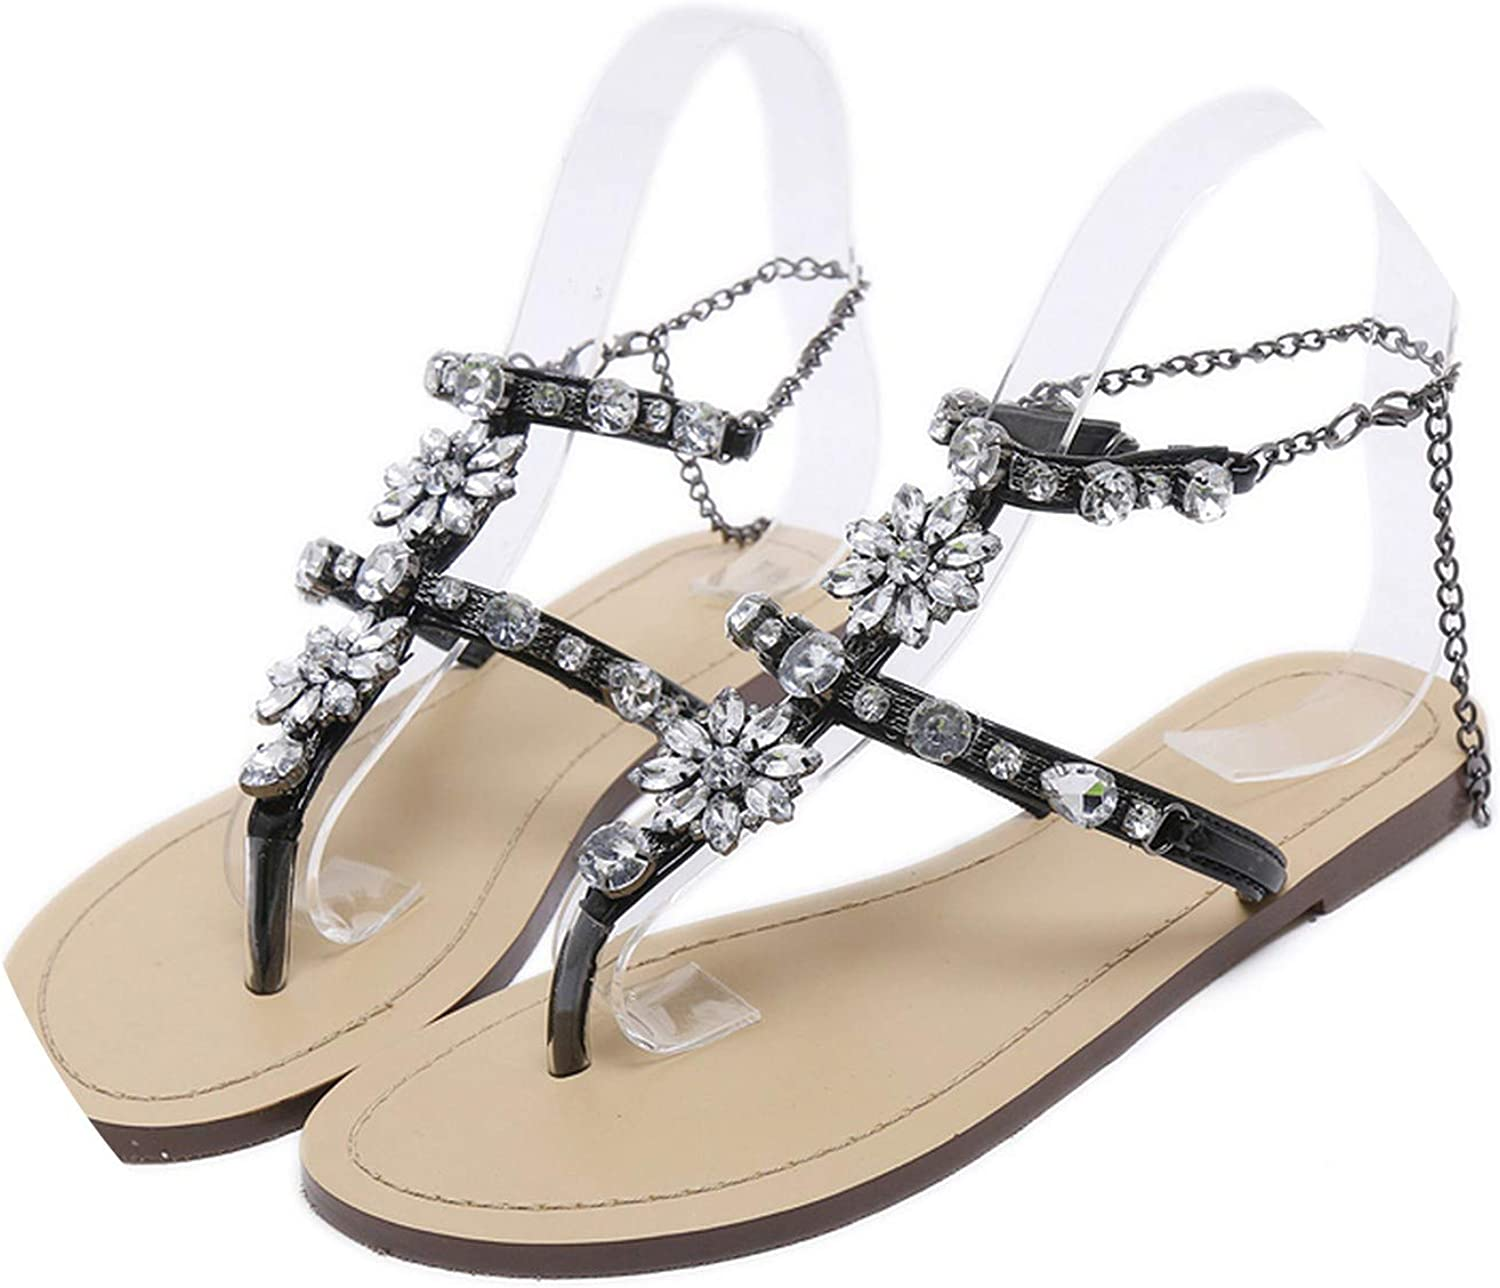 Miracle day 6 color Woman Sandals shoes Rhinestones Chains Flat Sandals Crystal Chaussure Plus Size 46